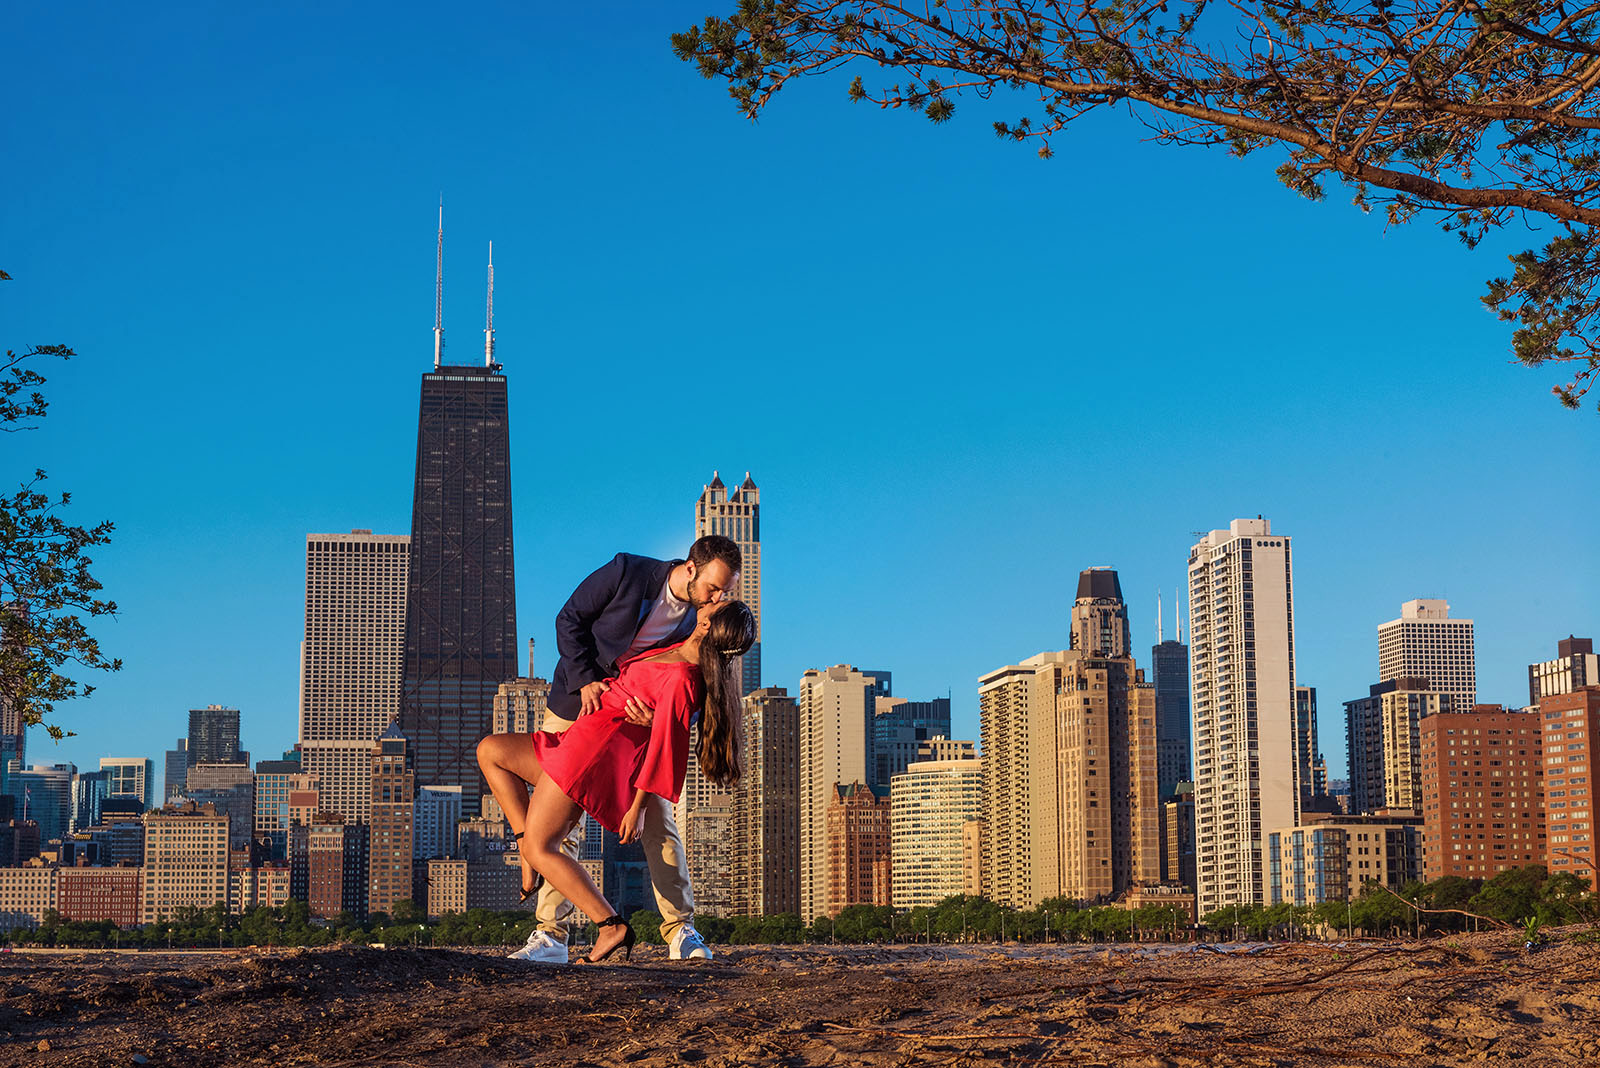 Chicago Engagement Session location at North Avenue Beach with skyline in background